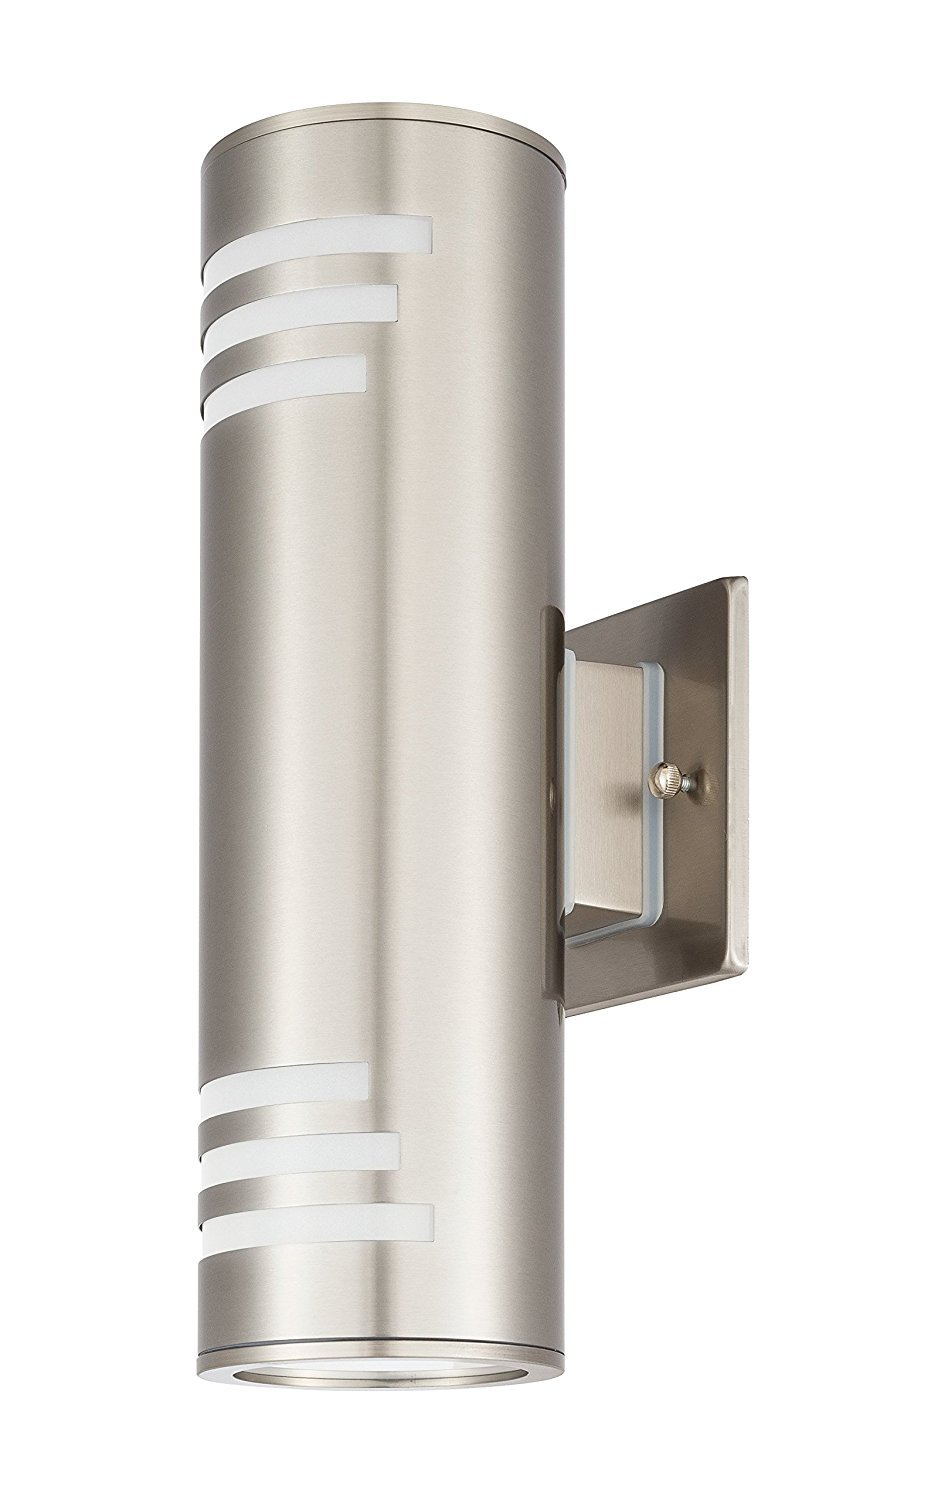 Outdoor Wall Light Waterproof Wall Lamp Fixture,Outdoor Wall Sconce 2 Lights Wall Mount Light,Stainless Steel 304 with Toughened Glass UL Listed Suitable for Garden & Patio Lights Tengxin